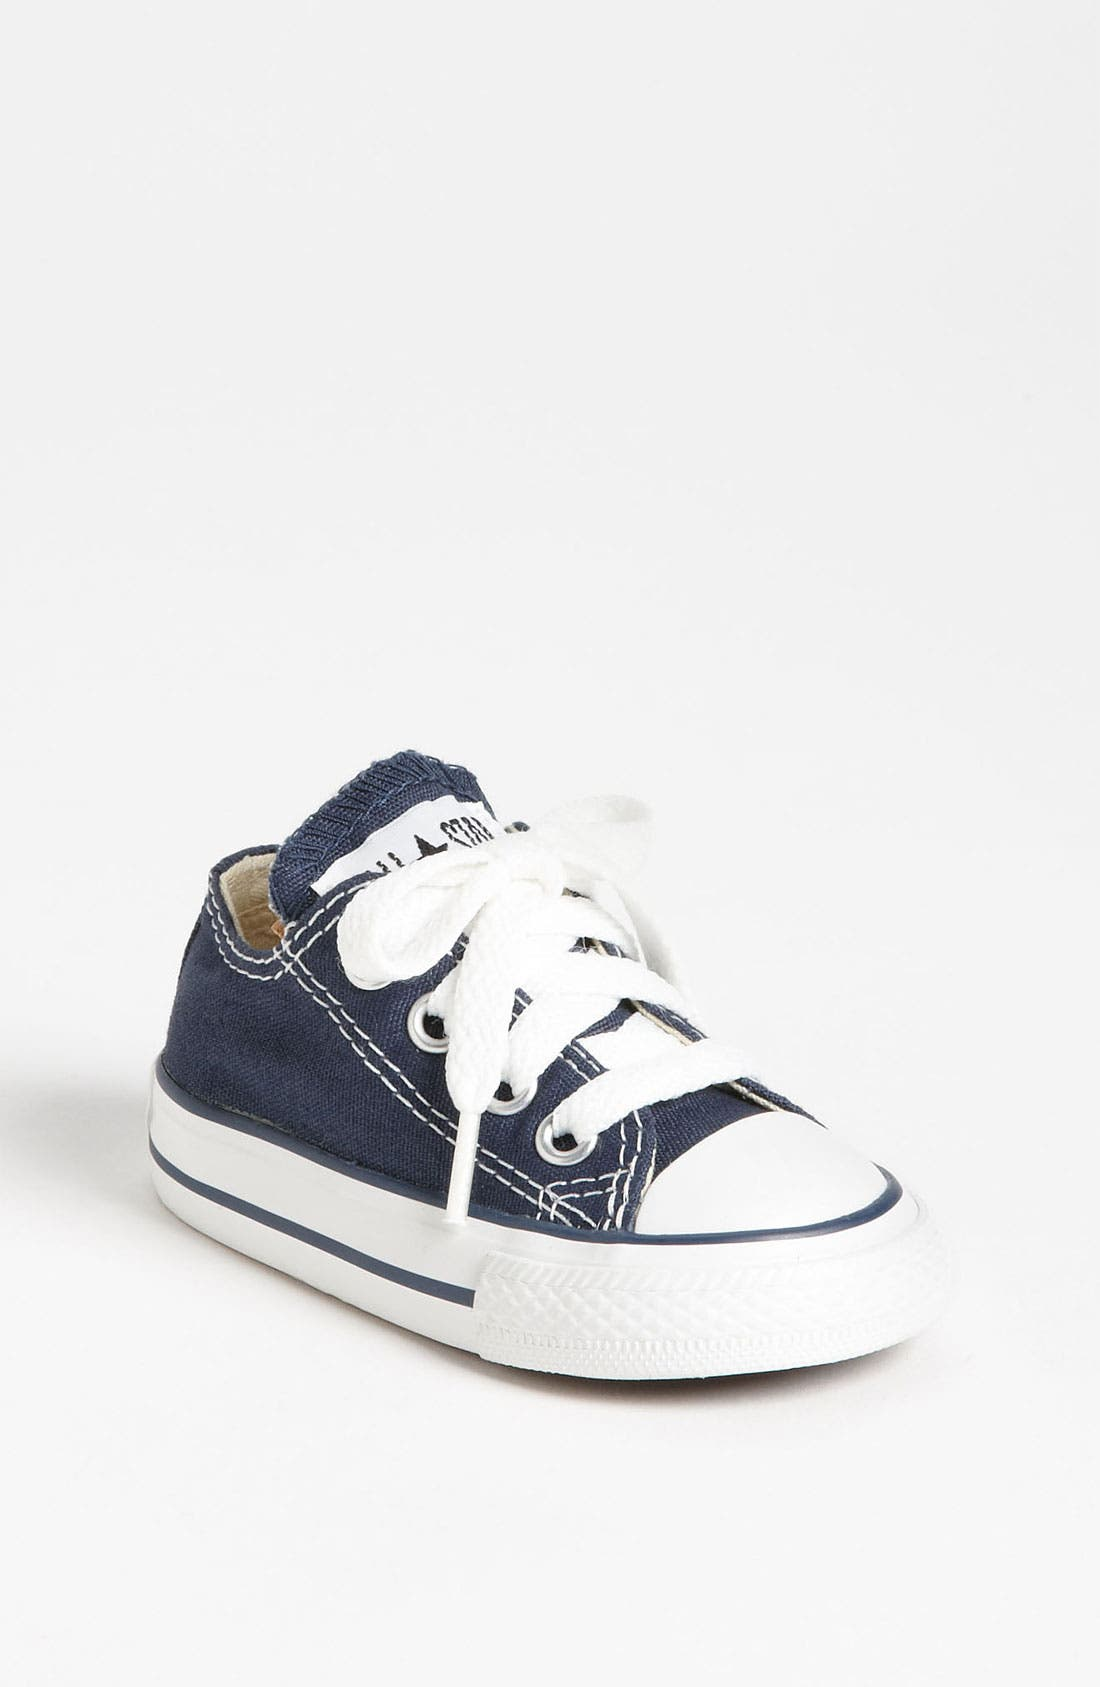 Alternate Image 1 Selected - Converse Chuck Taylor® Low Top Sneaker (Baby, Walker & Toddler)